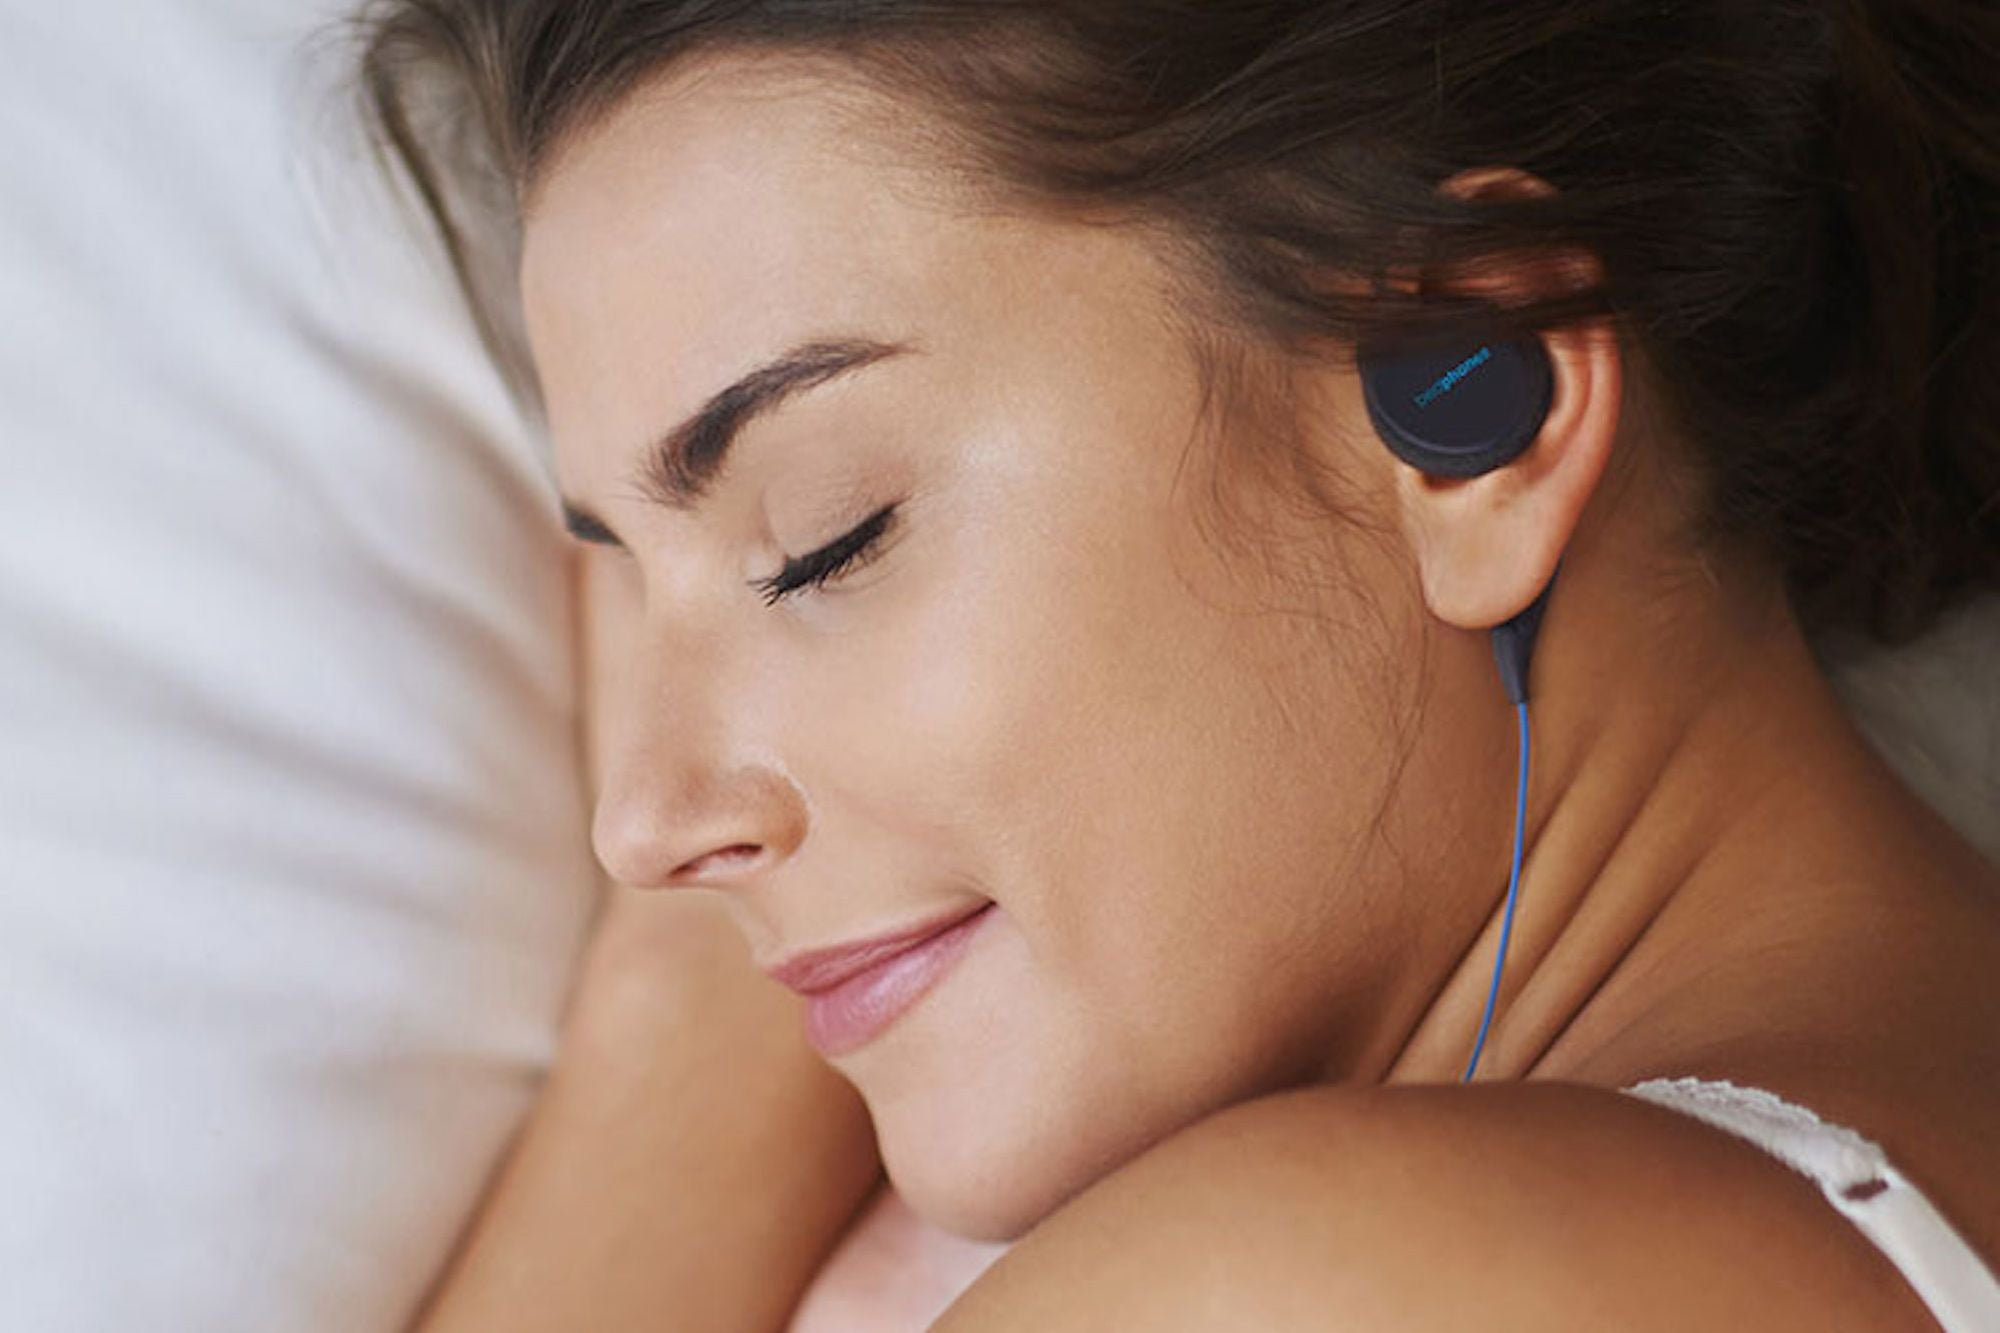 These Headphones are Designed to Help You Fall and Stay Asleep